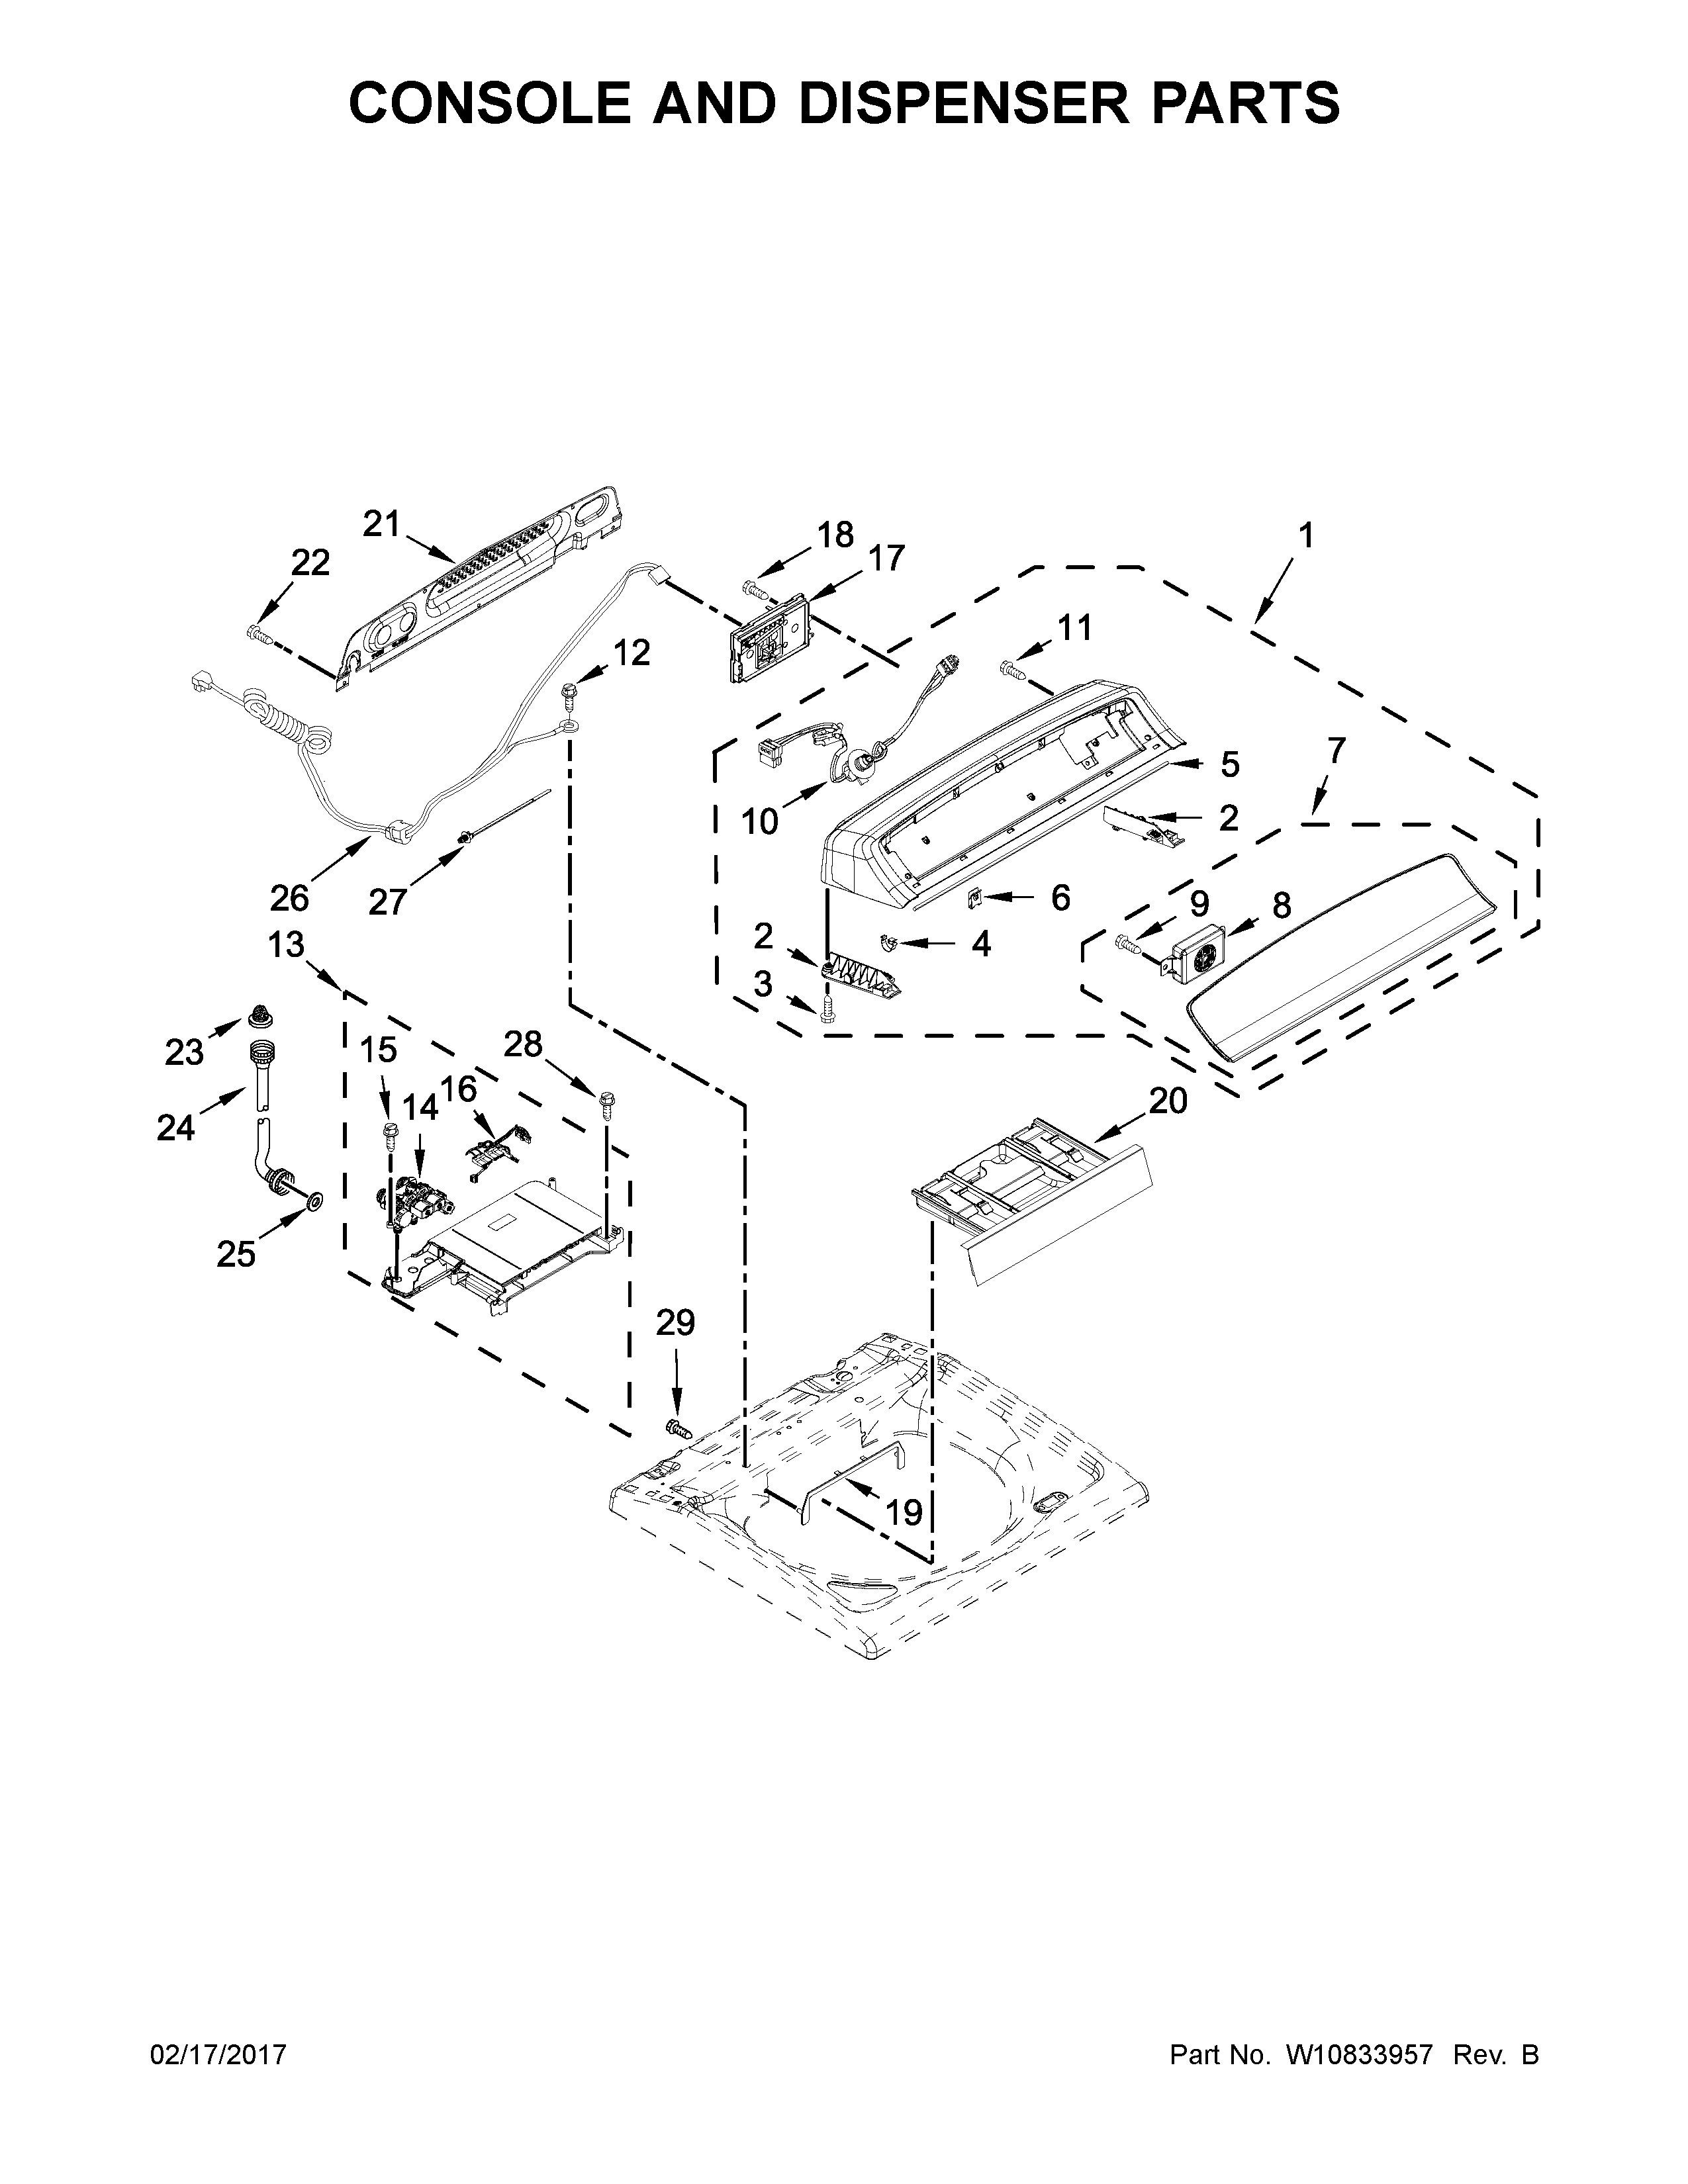 Whirlpool 7MWTW7000EW0 console and dispenser parts diagram